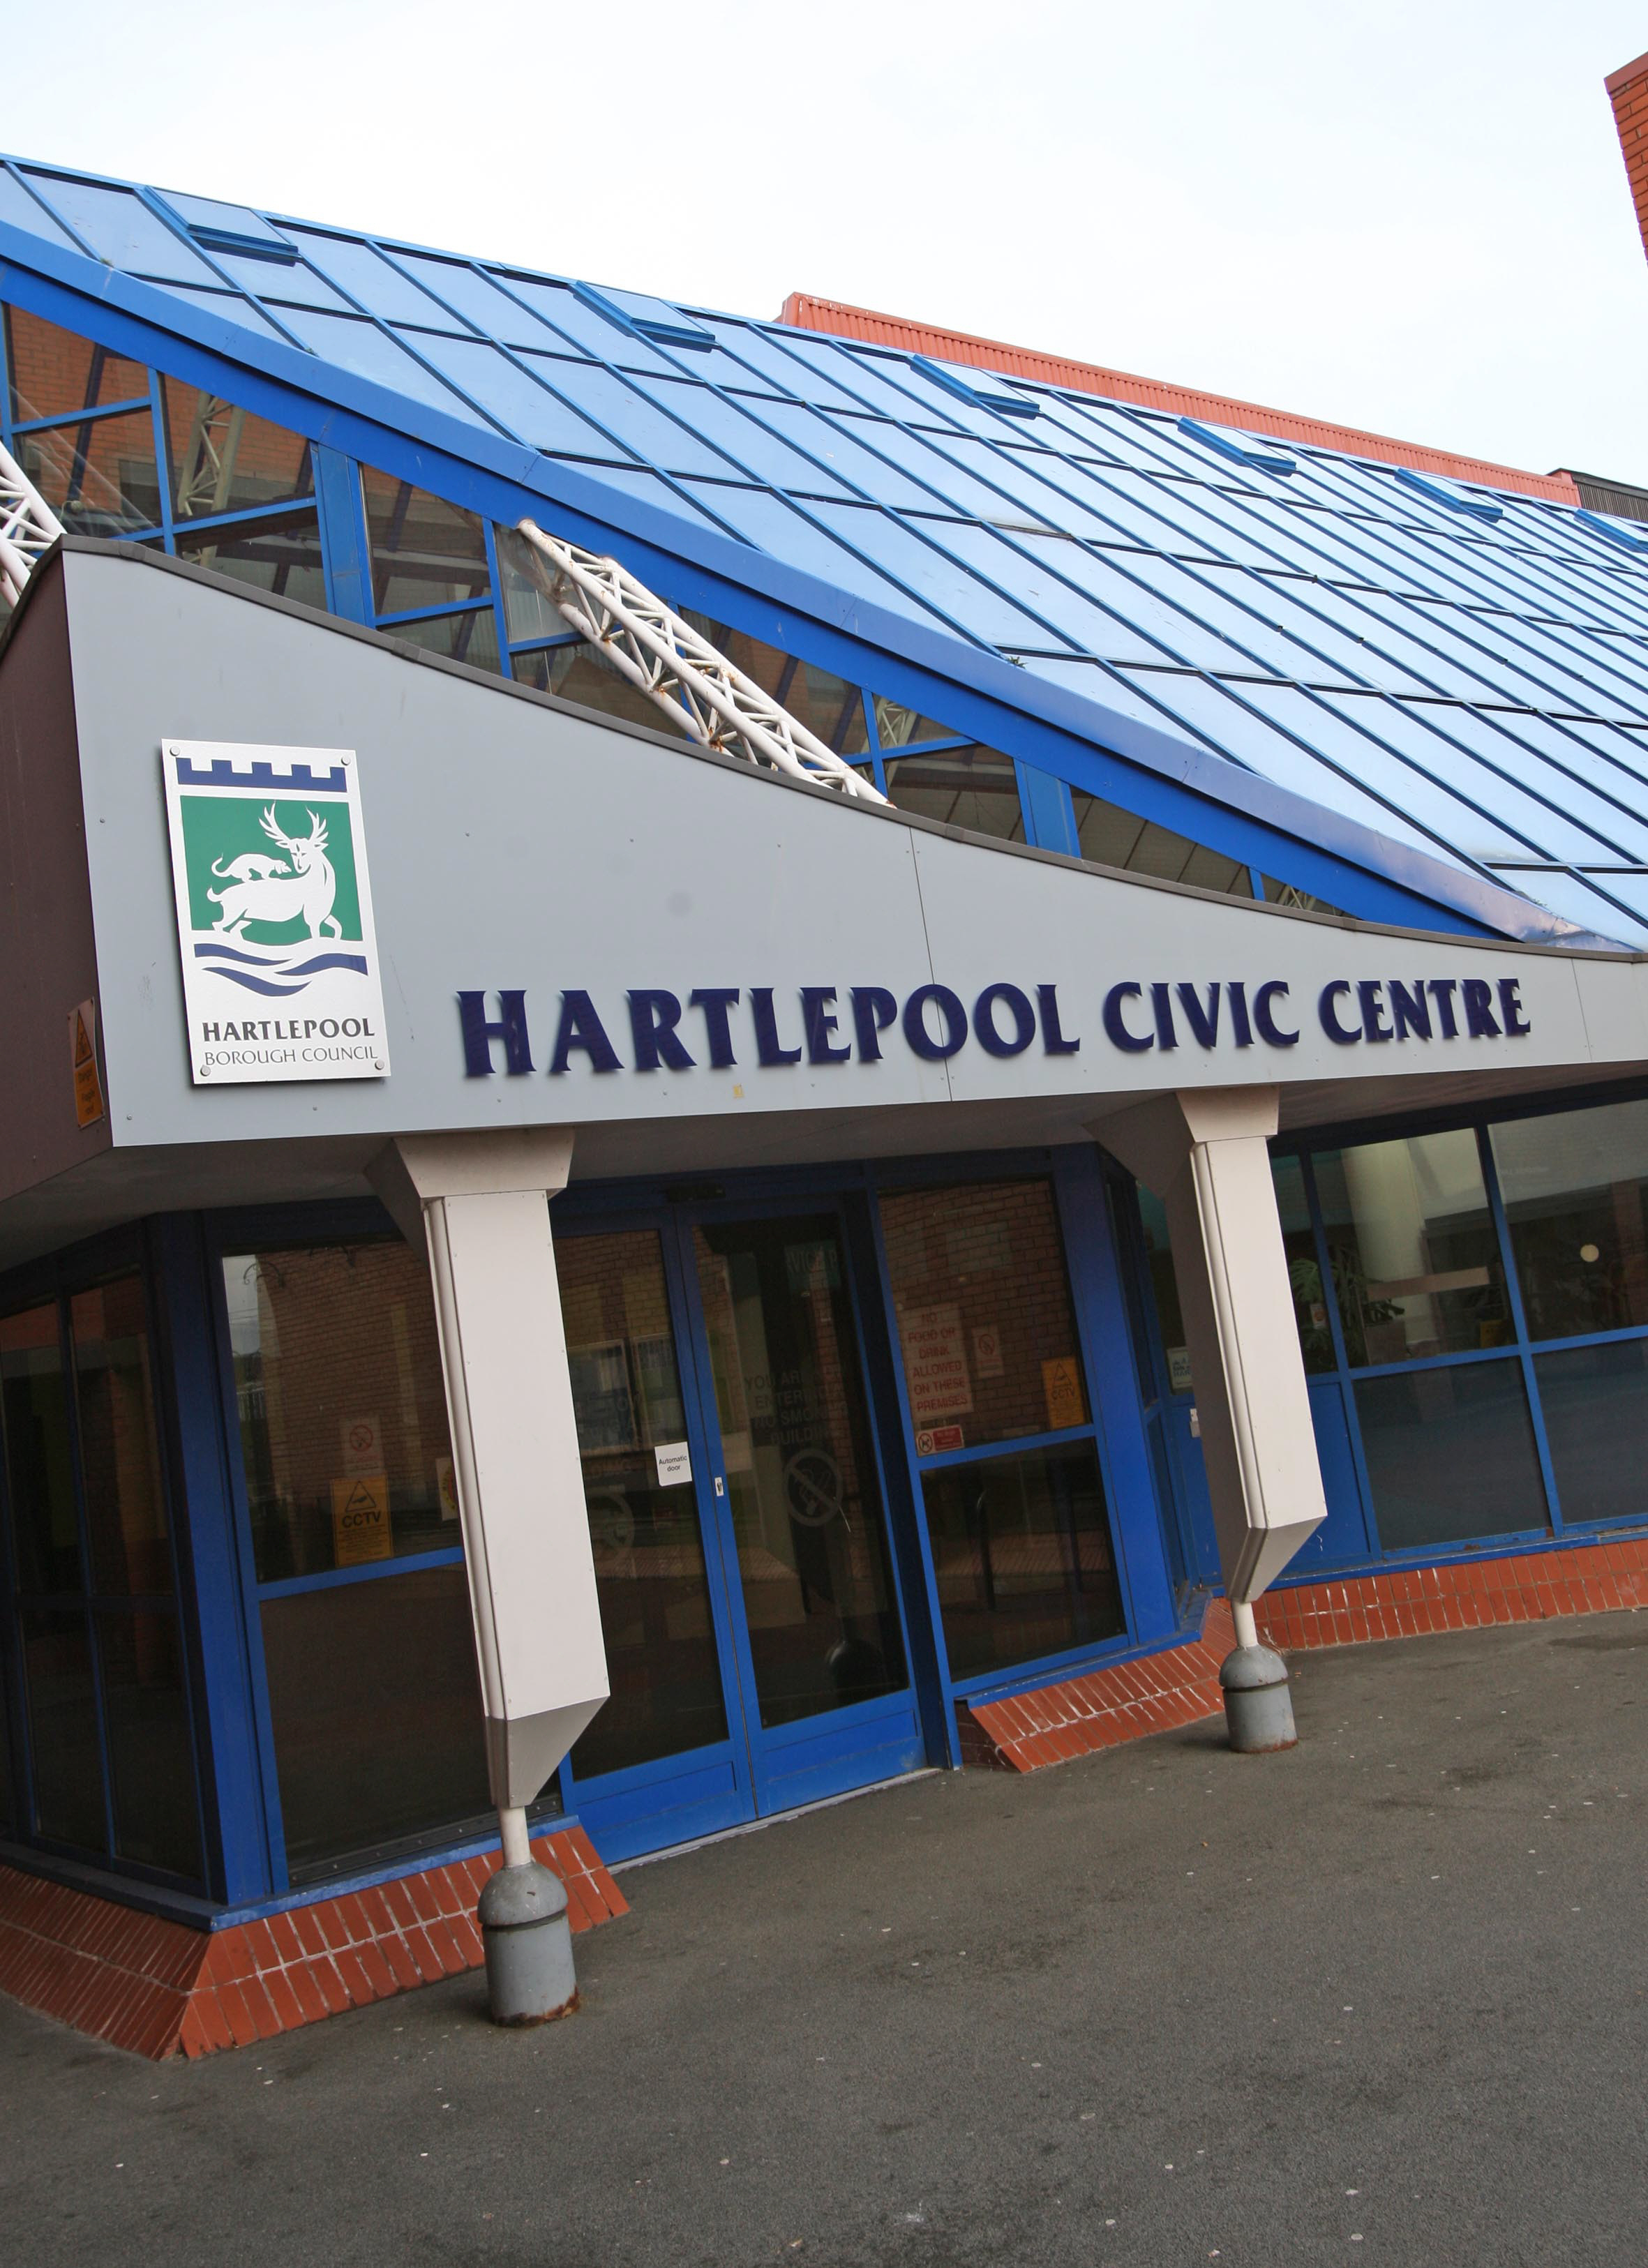 Hartlepool Civic Centre